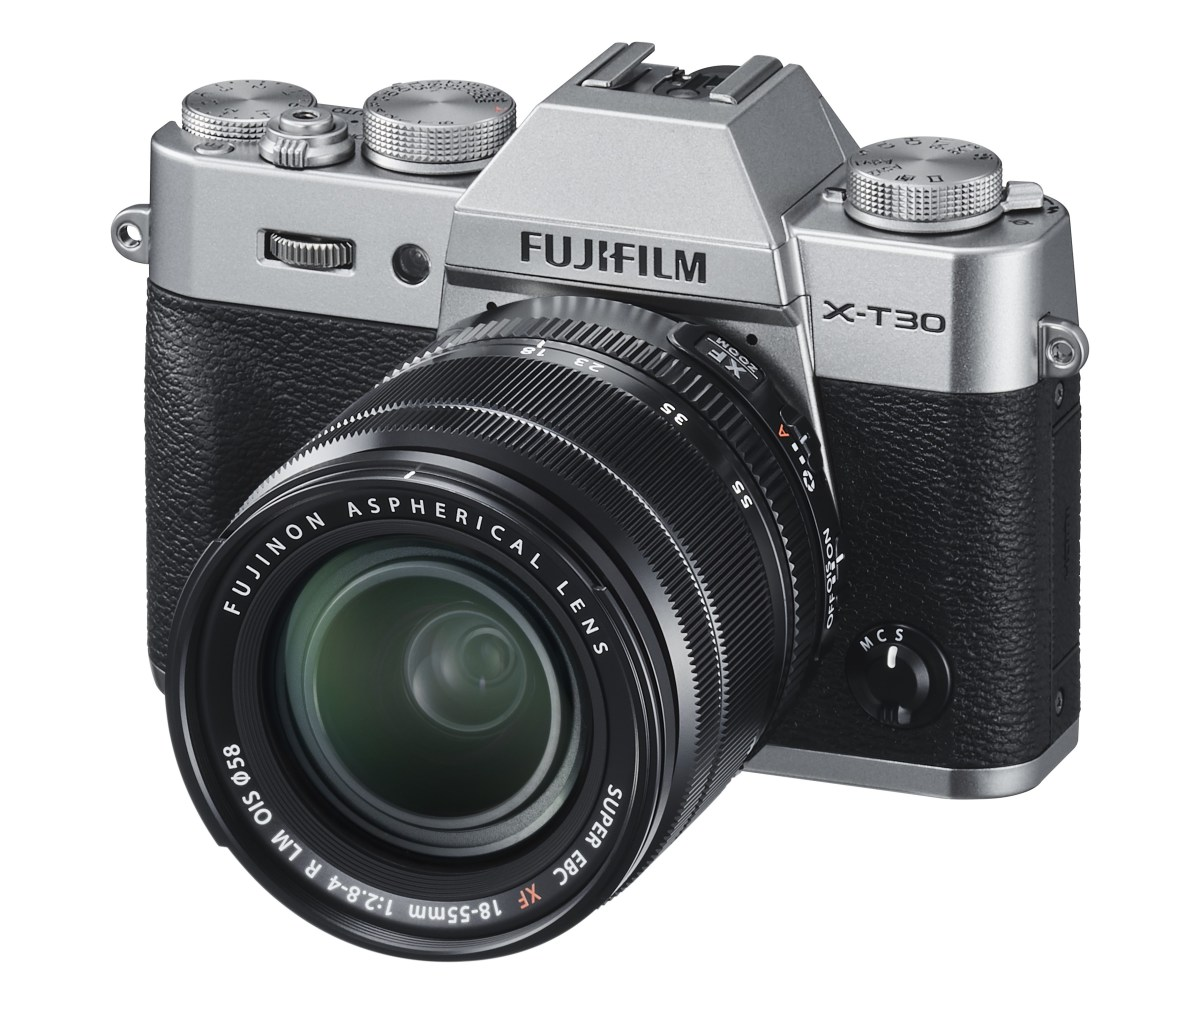 Fujifilm launches its compact X-T30